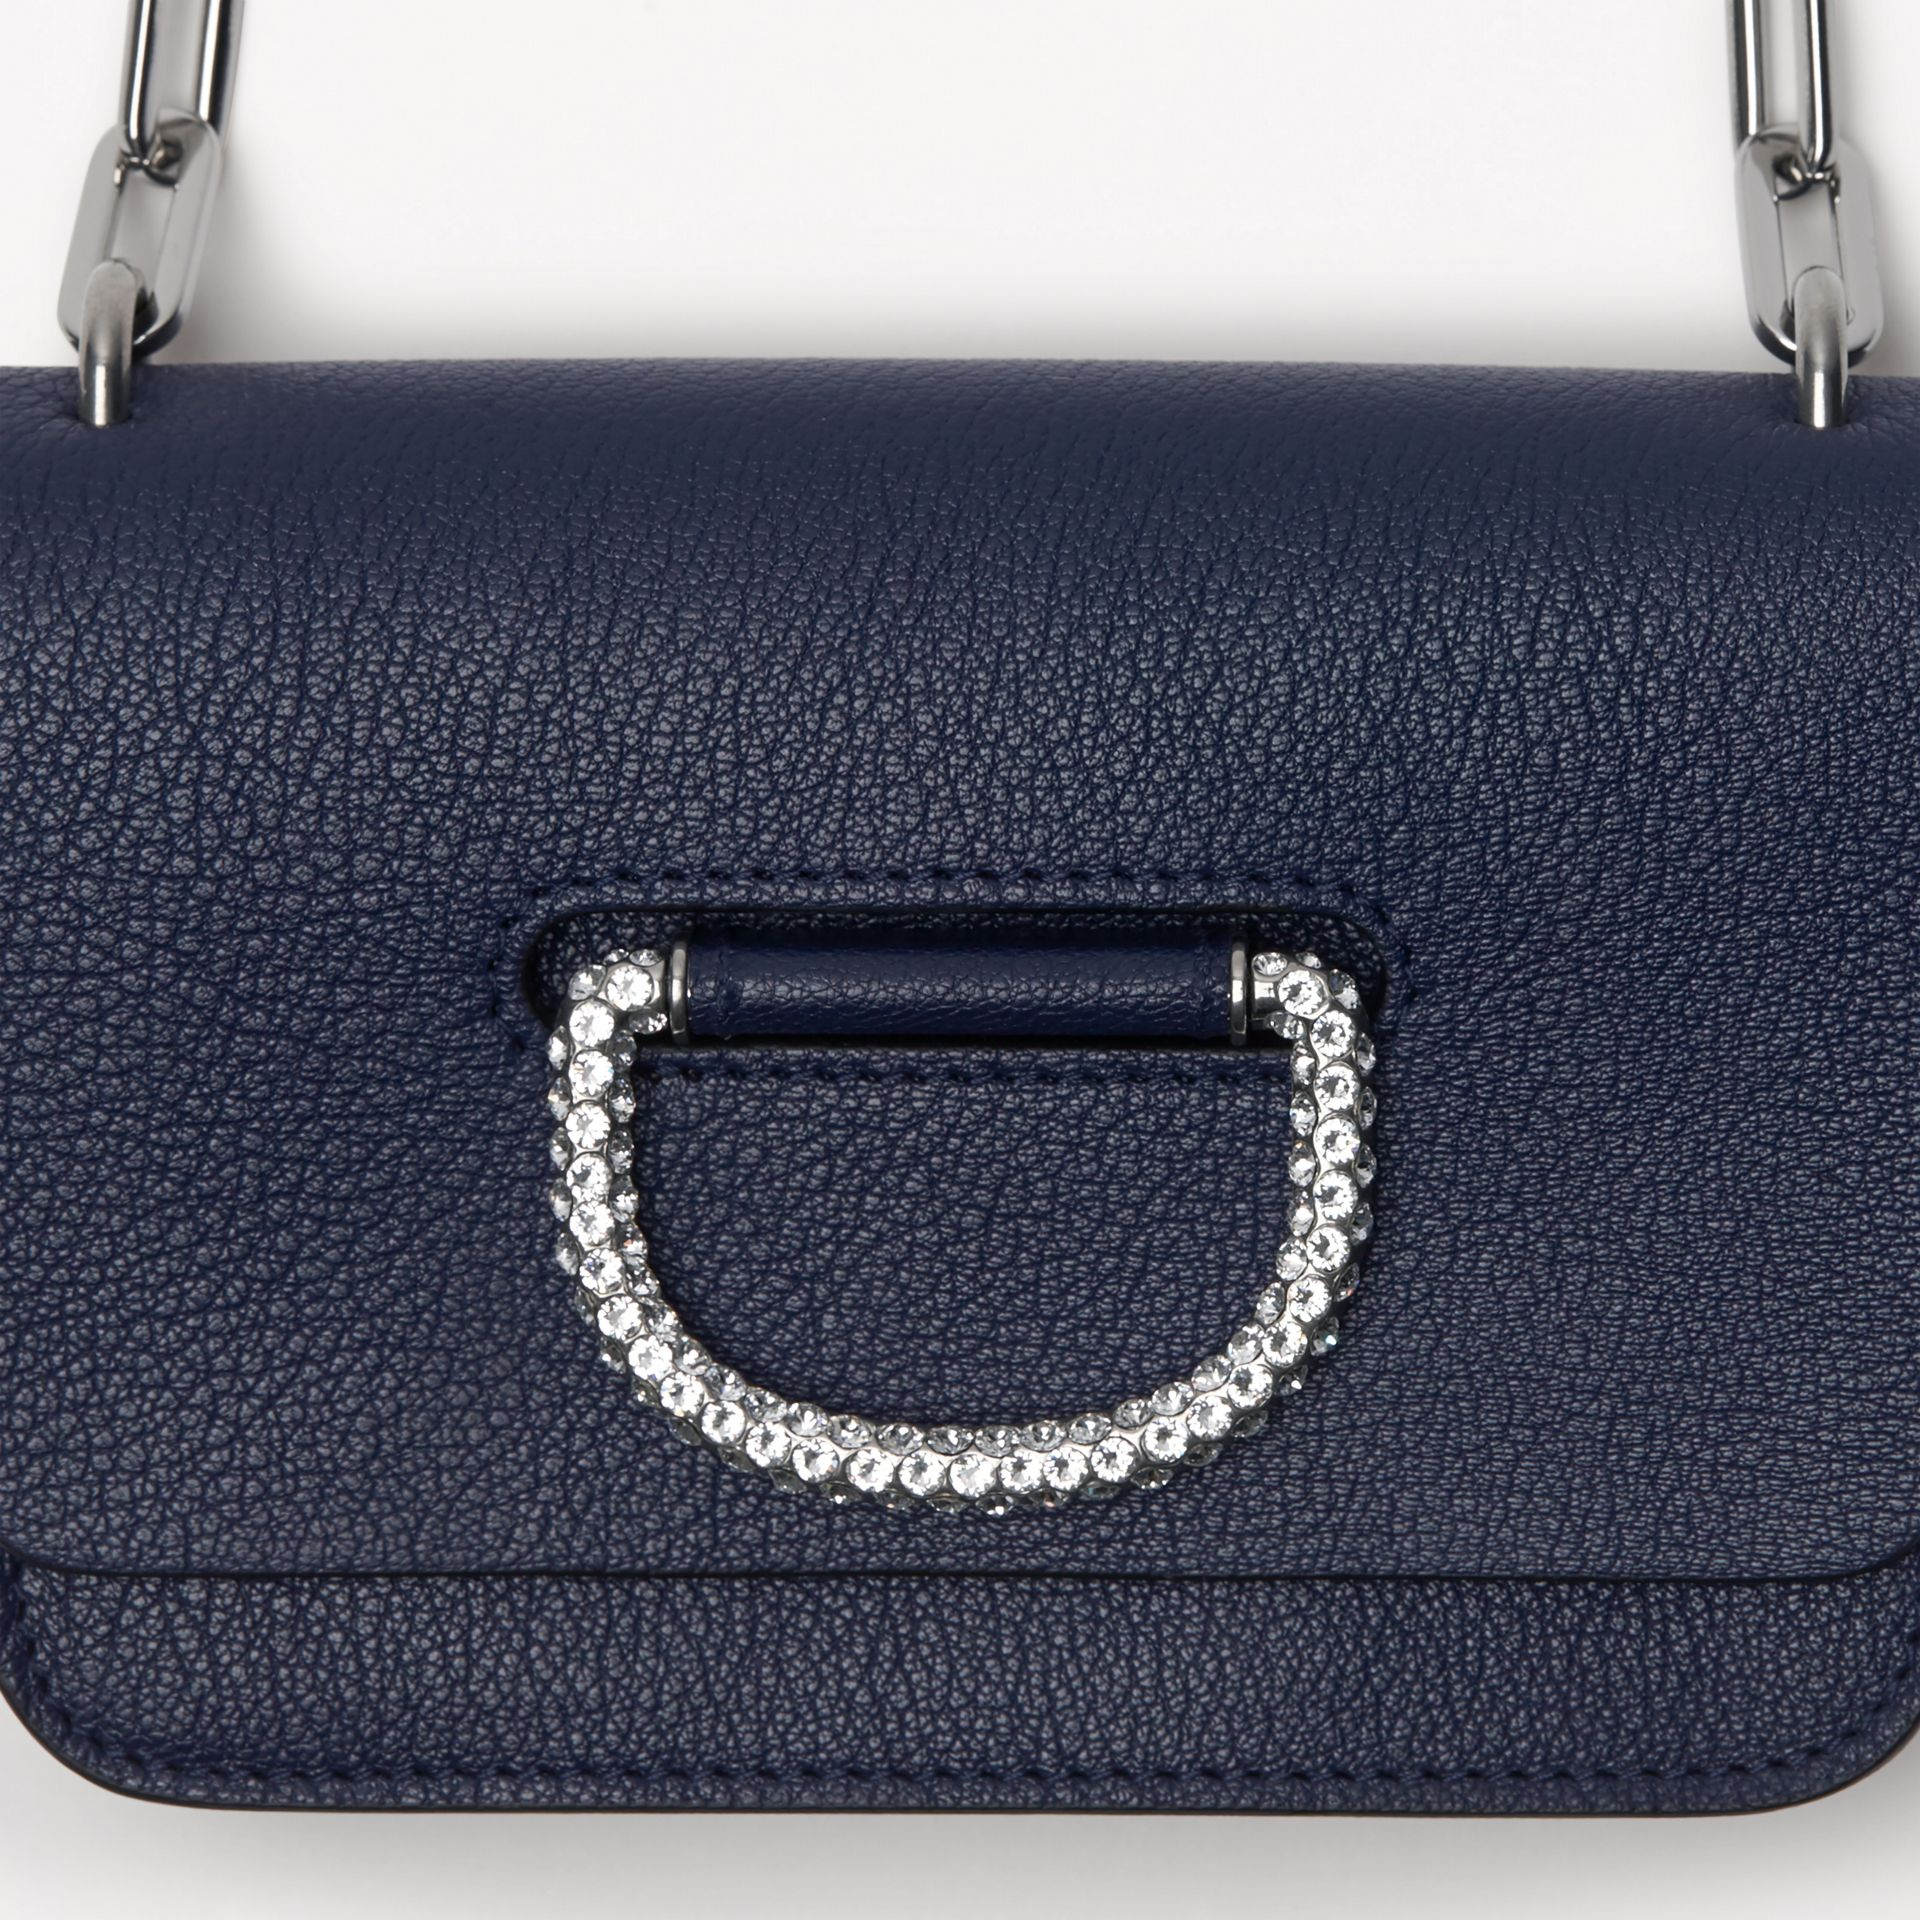 The Mini Leather Crystal D-ring Bag in Regency Blue - Women | Burberry - gallery image 1